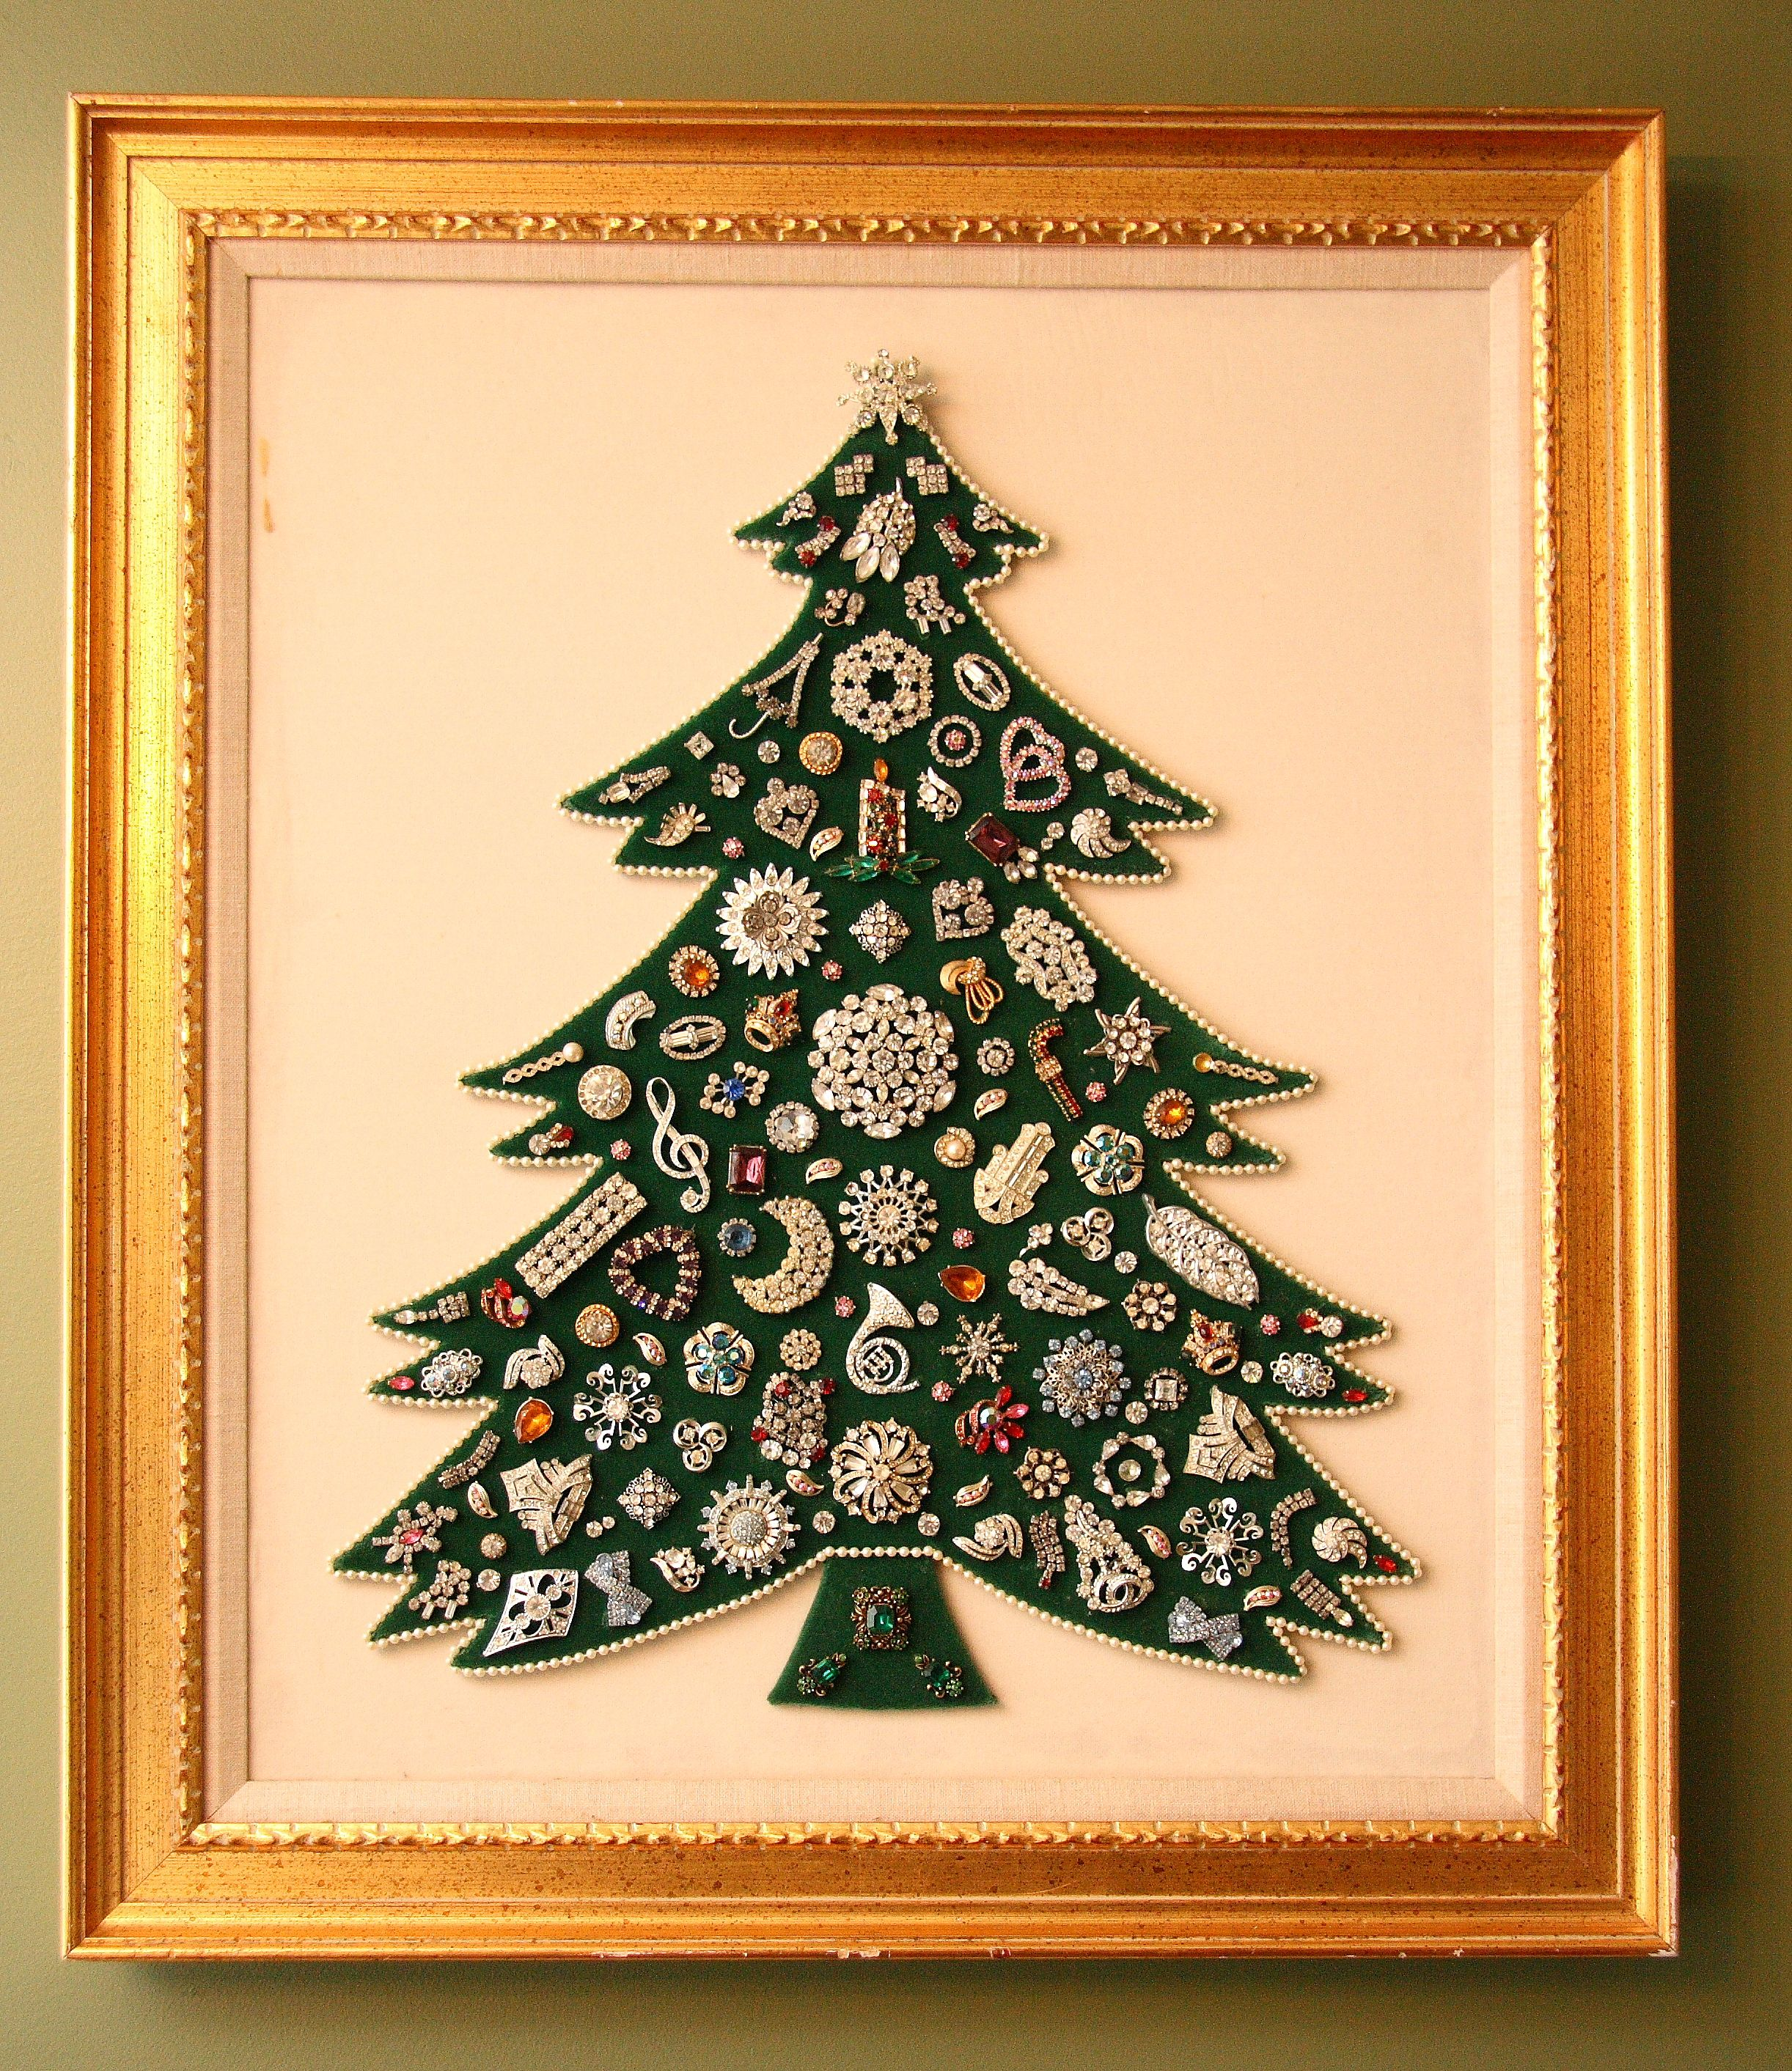 Jewel Christmas Tree Decorations: Framed Jewelry Christmas Trees